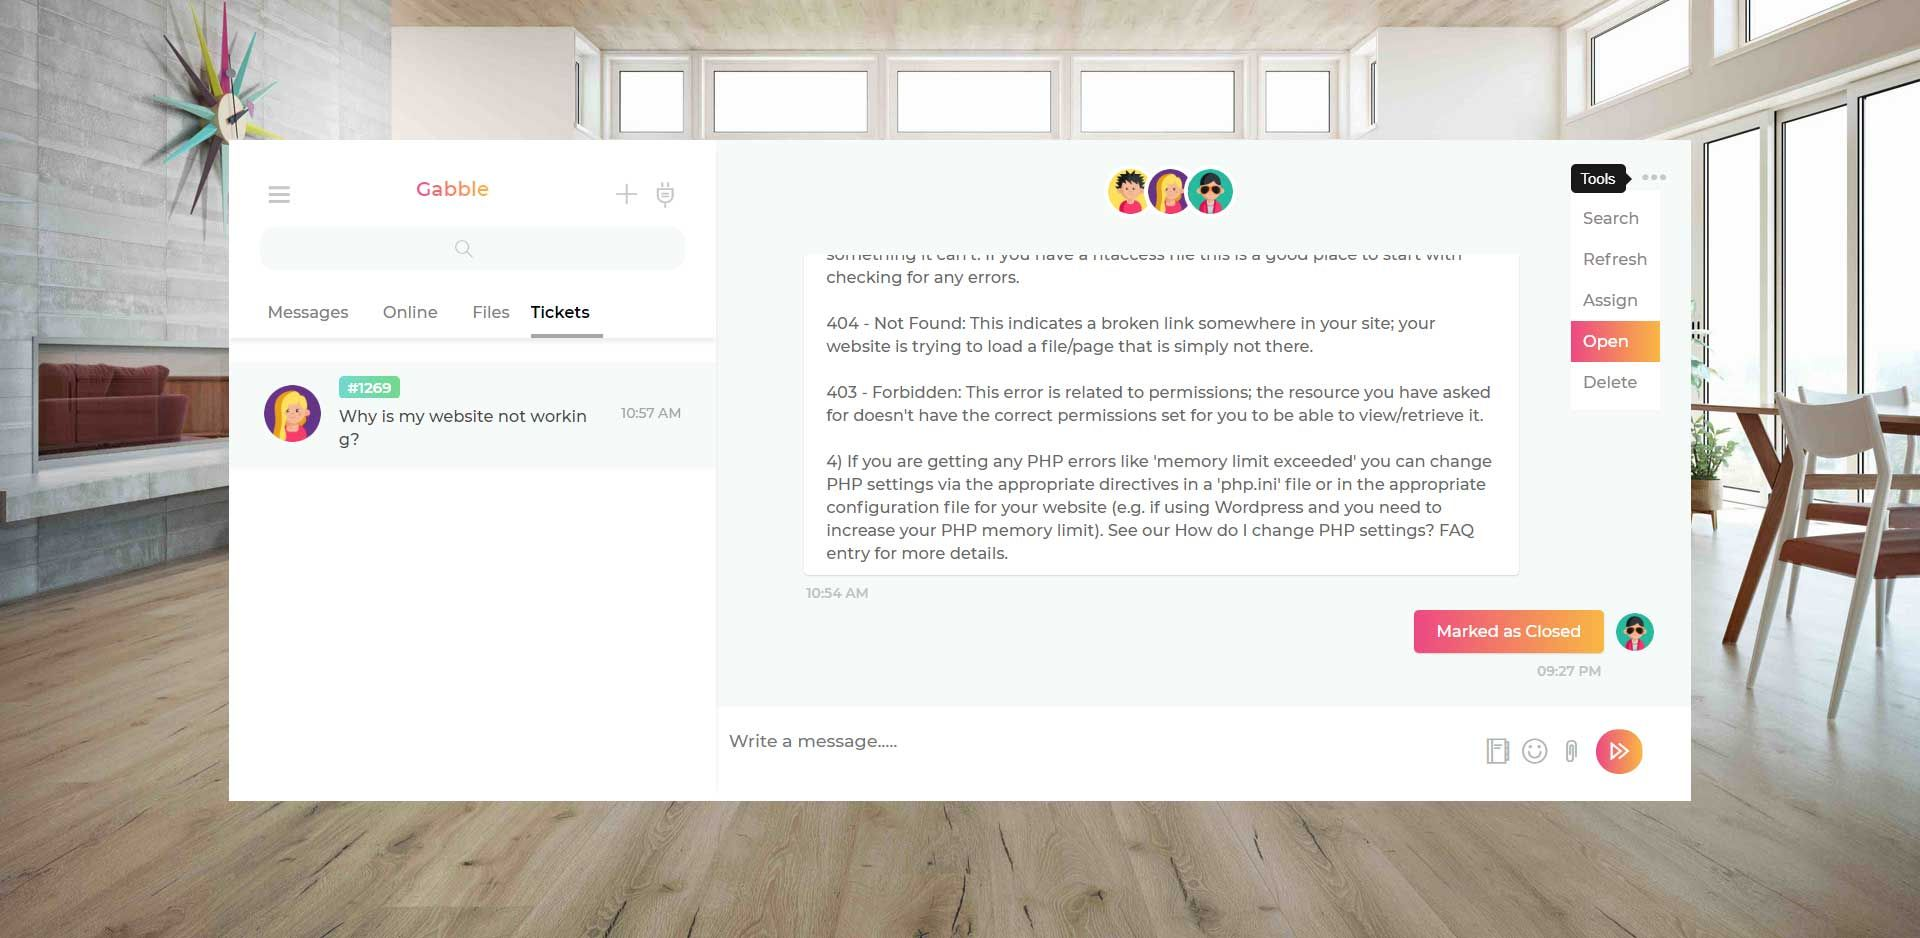 Gabble - Customer Messaging Platform And Ticketing Screenshot 5